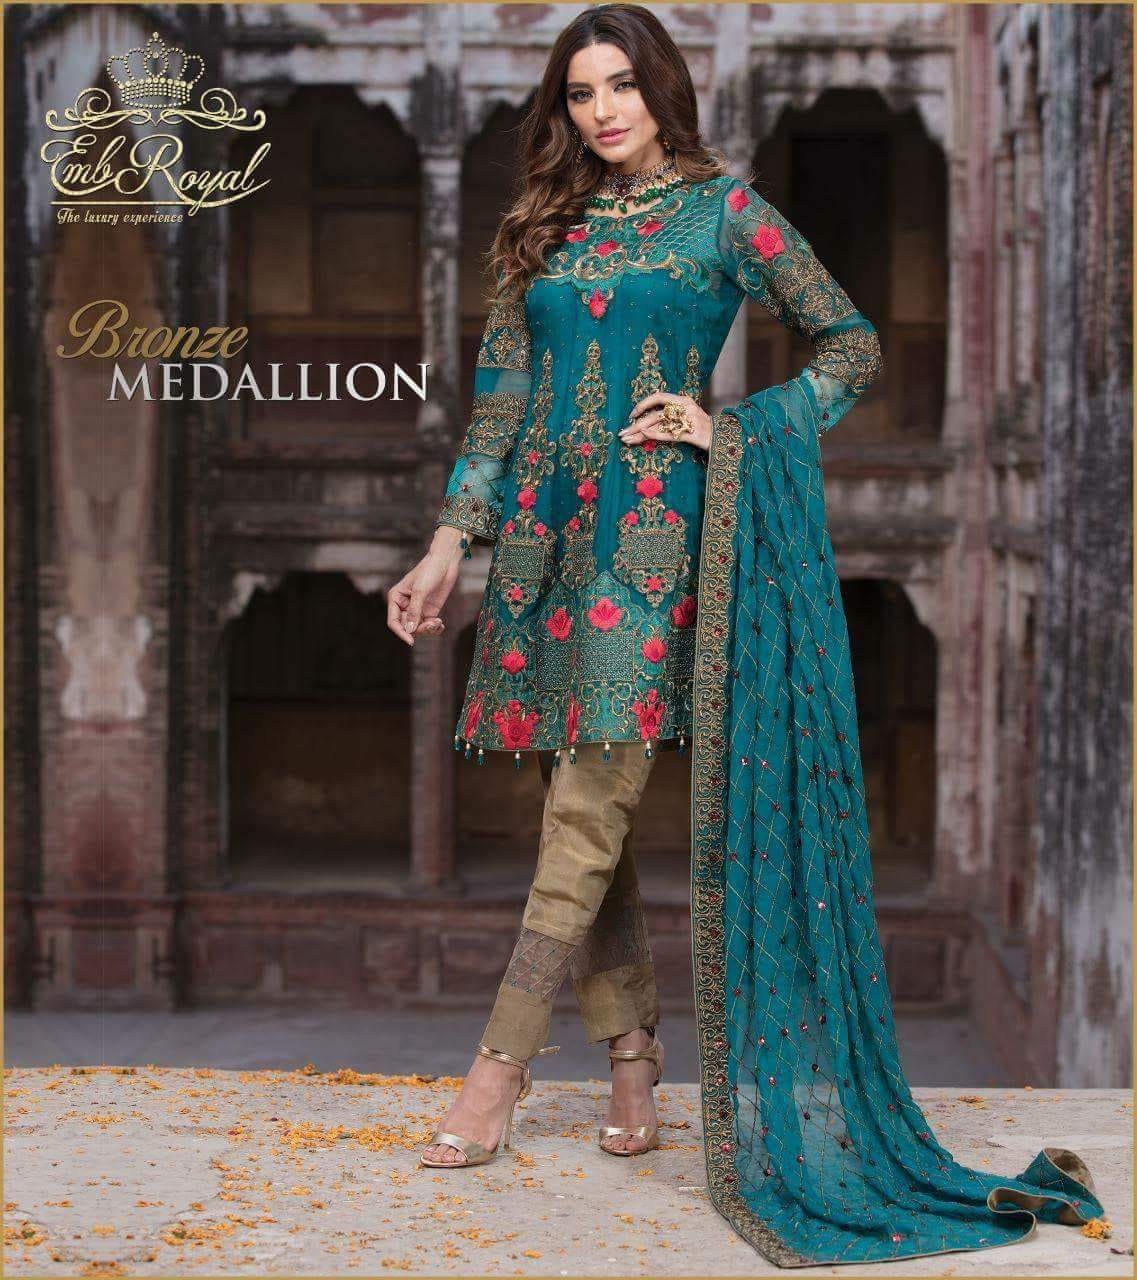 Emb Royal Chiffon - 3 Pc